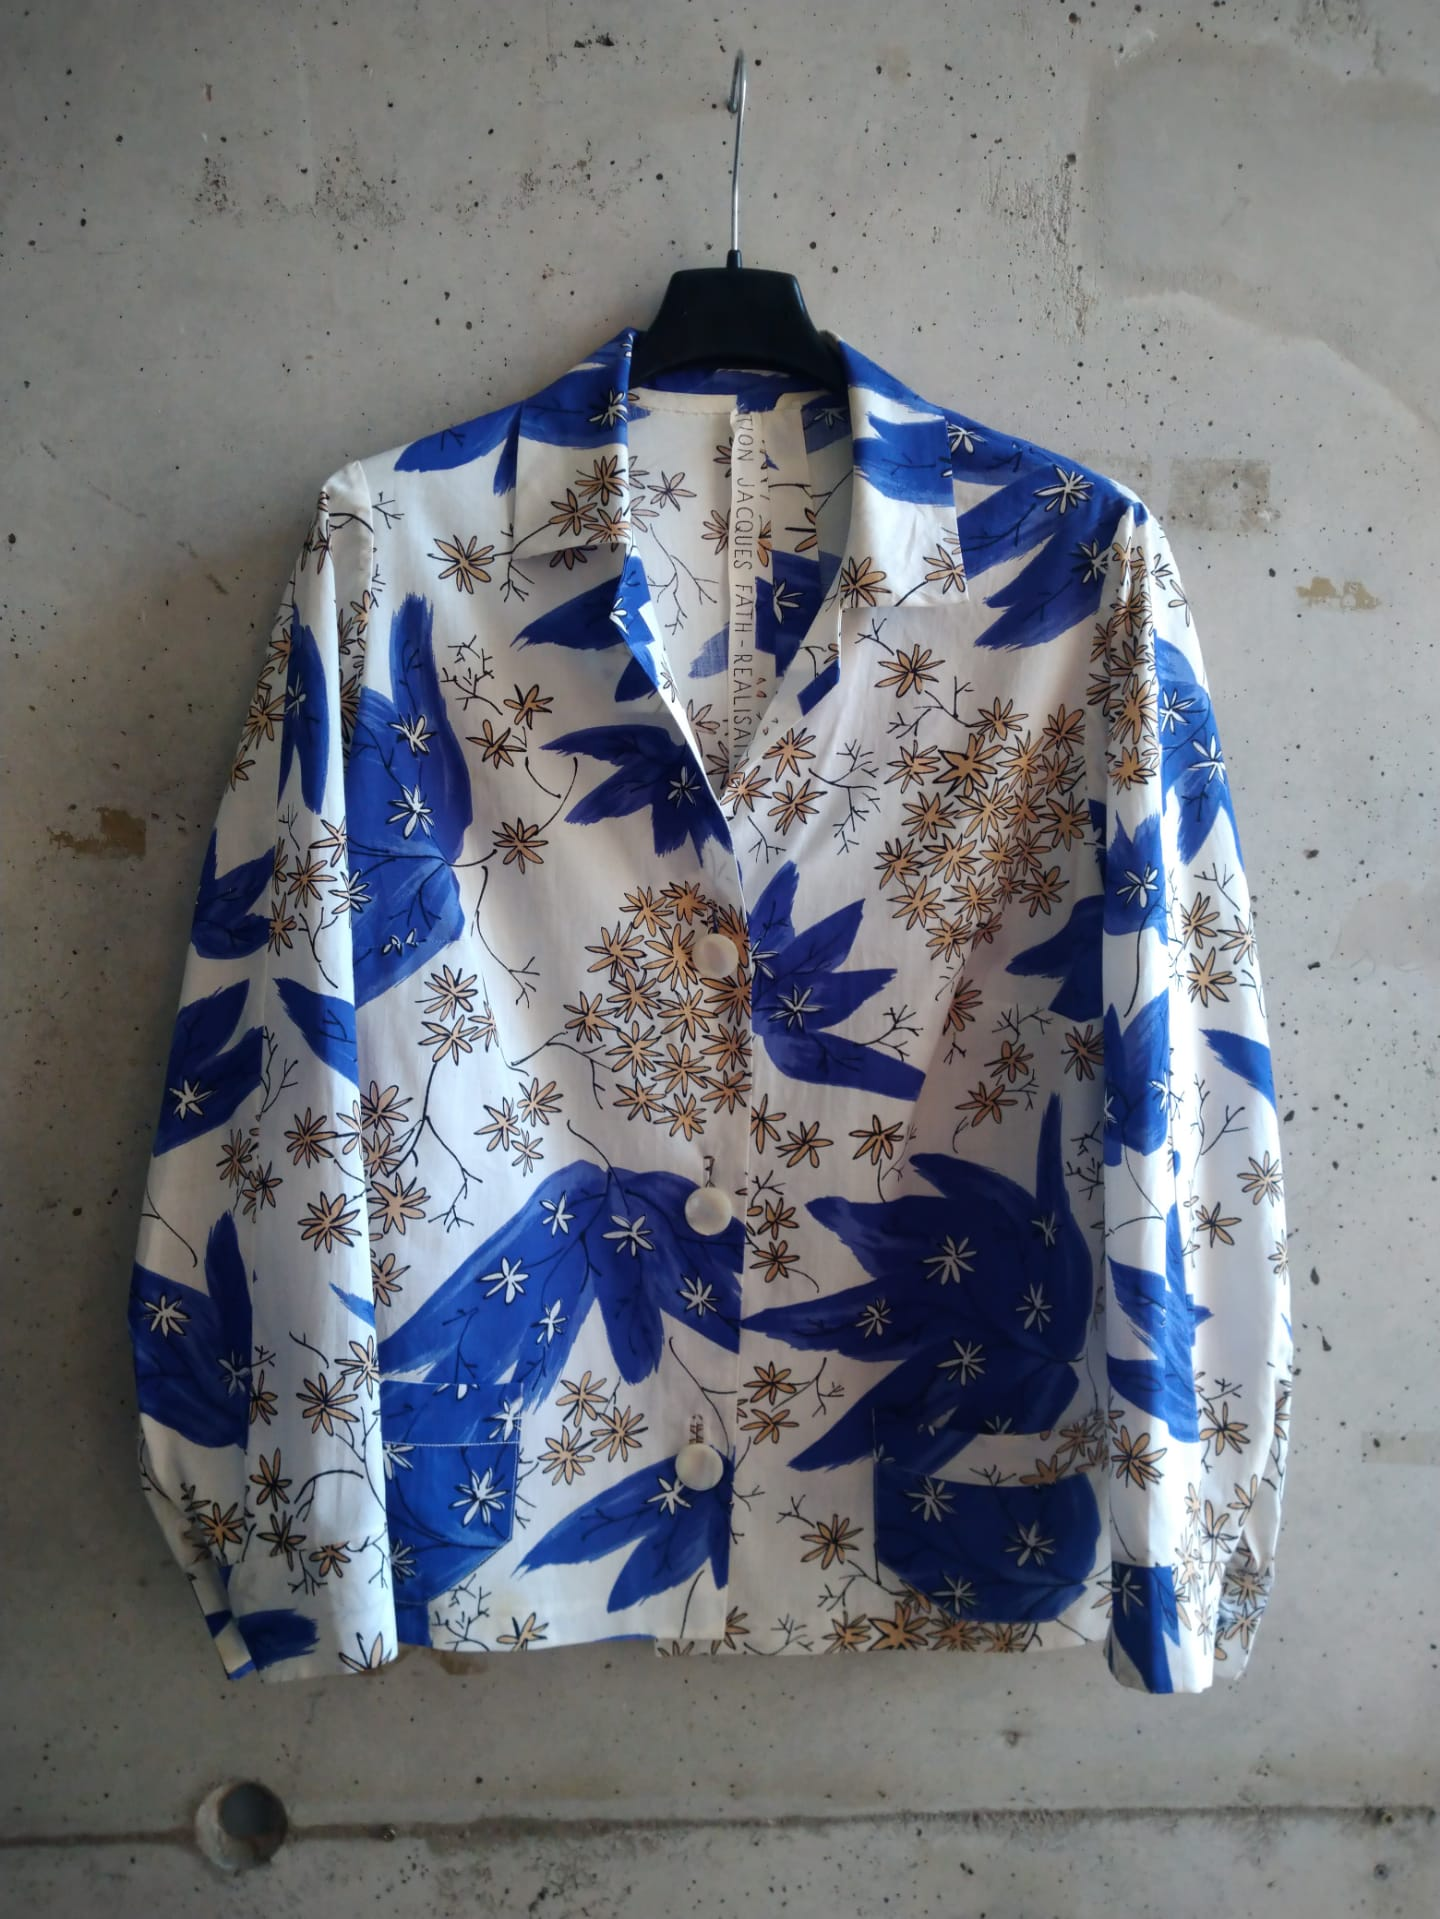 Handmade shirt in Jacques Fath fabric